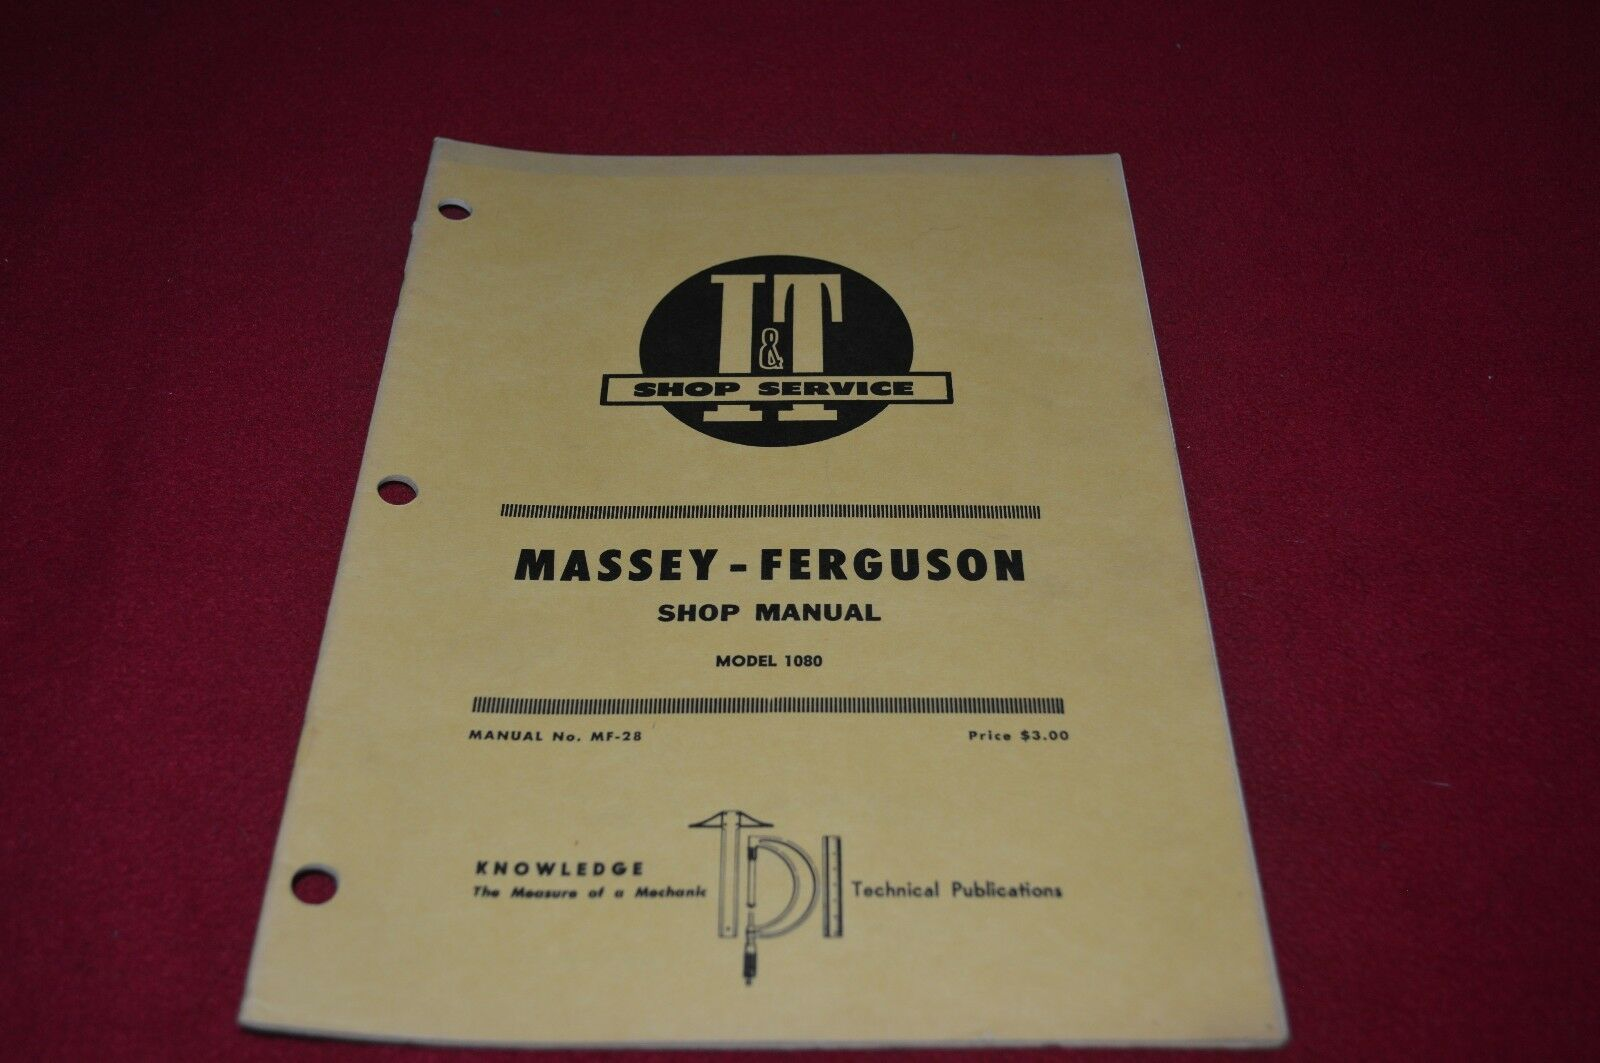 Massey Ferguson 1080 Tractor I&T Shop Manual DCPA6 1 of 1Only 1 available  ...